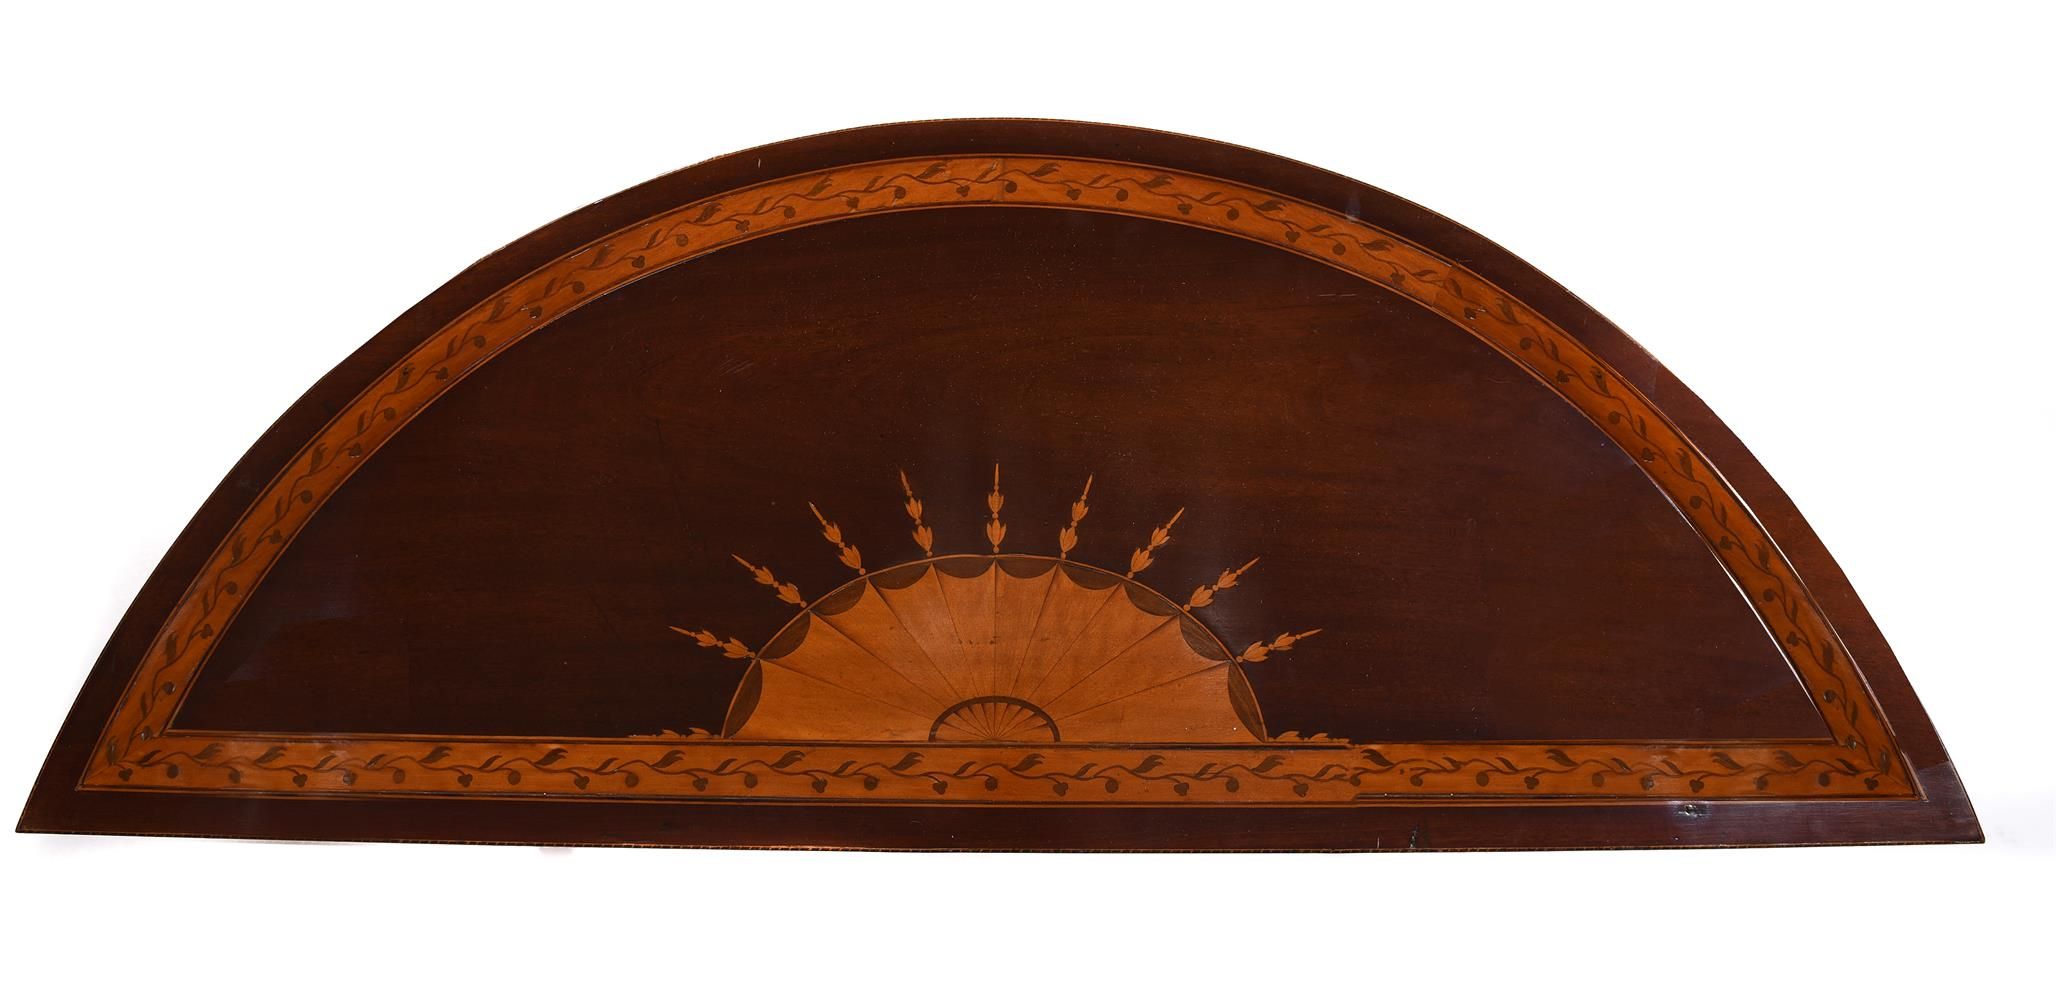 A PAIR OF GEORGE III MAHOGANY, SATINWOOD AND MARQUETRY DEMI-LUNE SIDE TABLES, CIRCA 1790 - Image 5 of 6